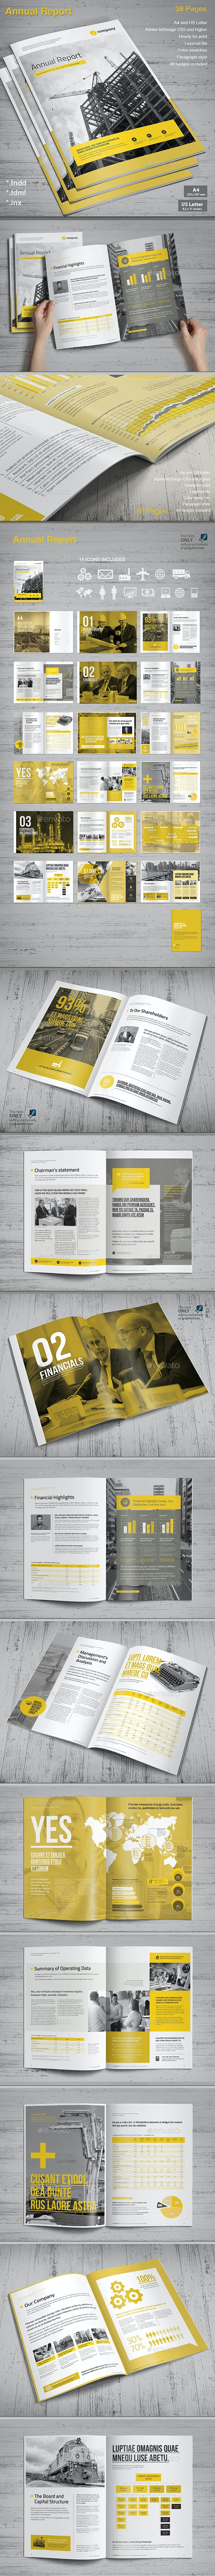 Annual Report Vol. 2 - Informational Brochures